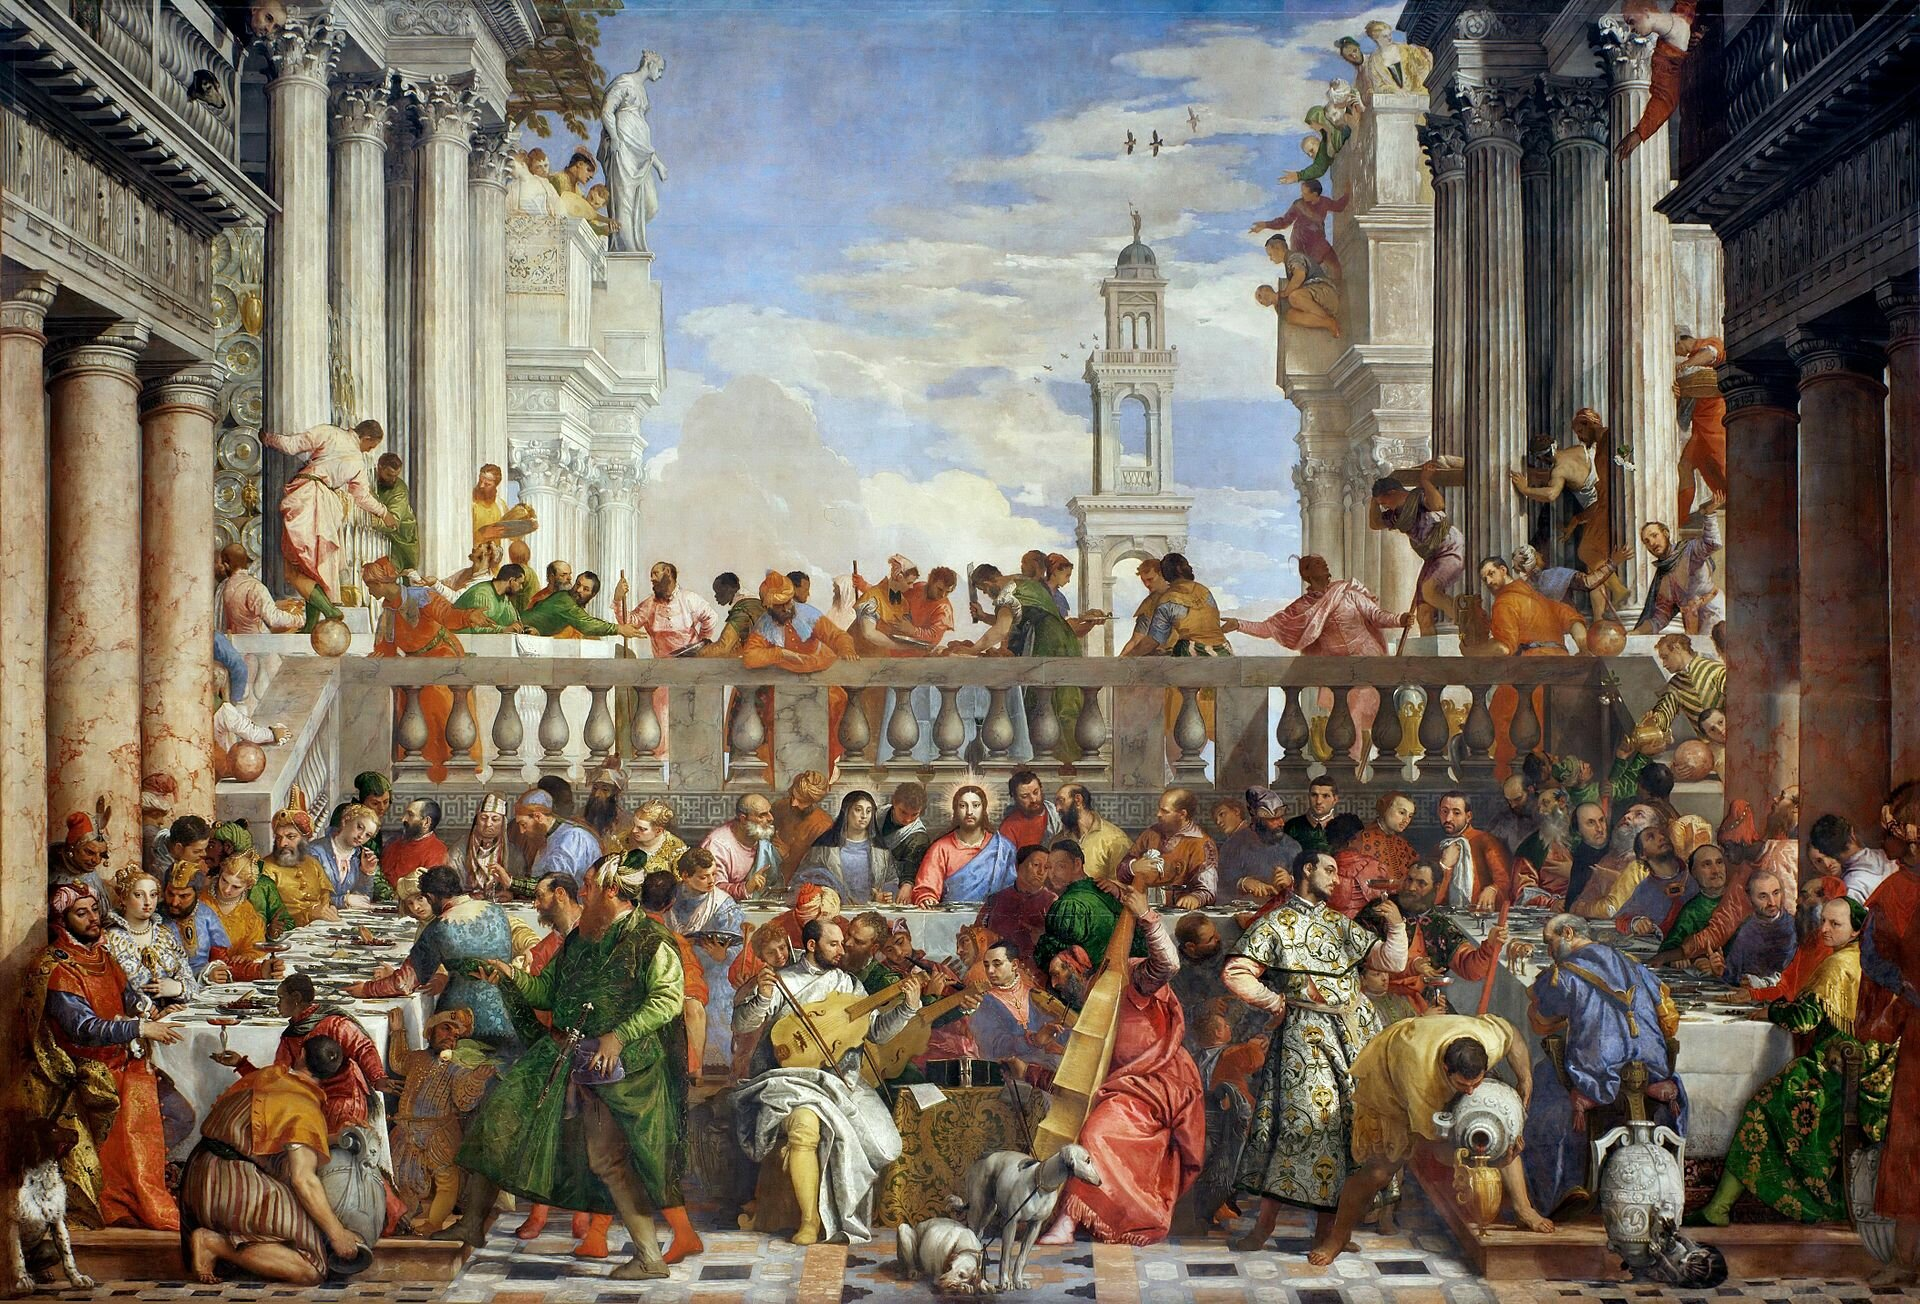 Musicians and Artists: Ortiz and Veronese